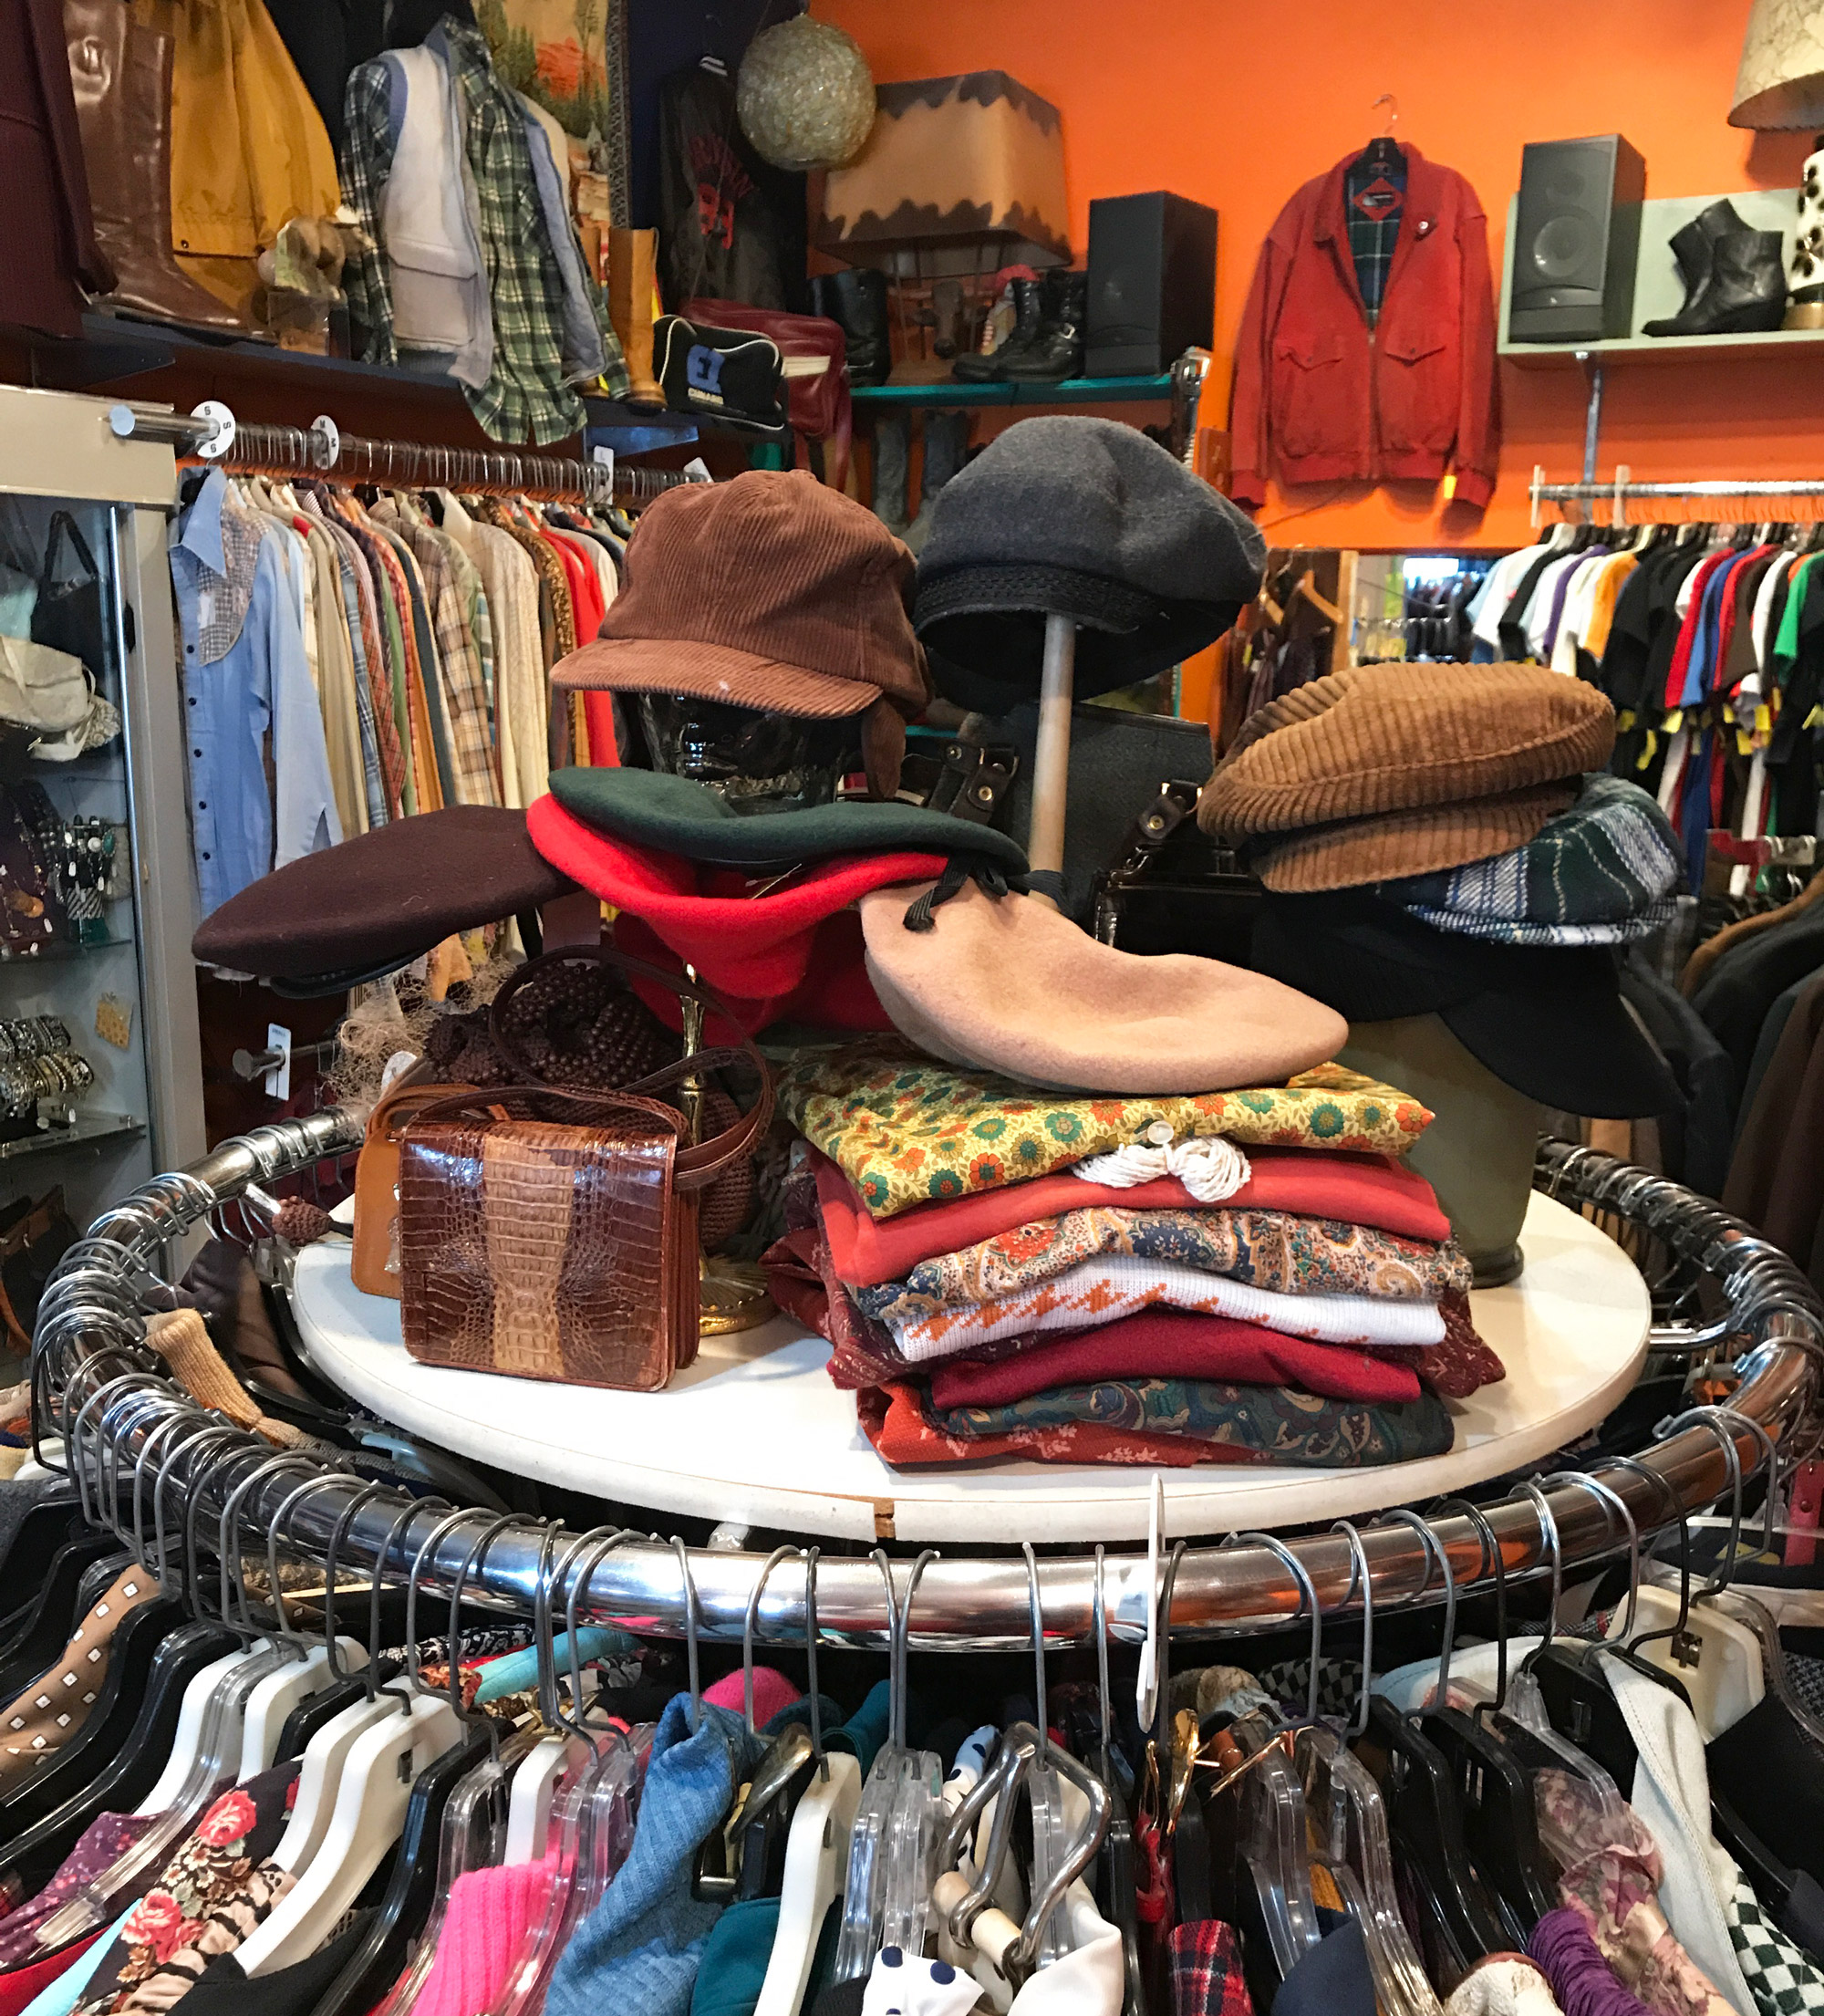 Clothing and hats at 40 south street consignment shop